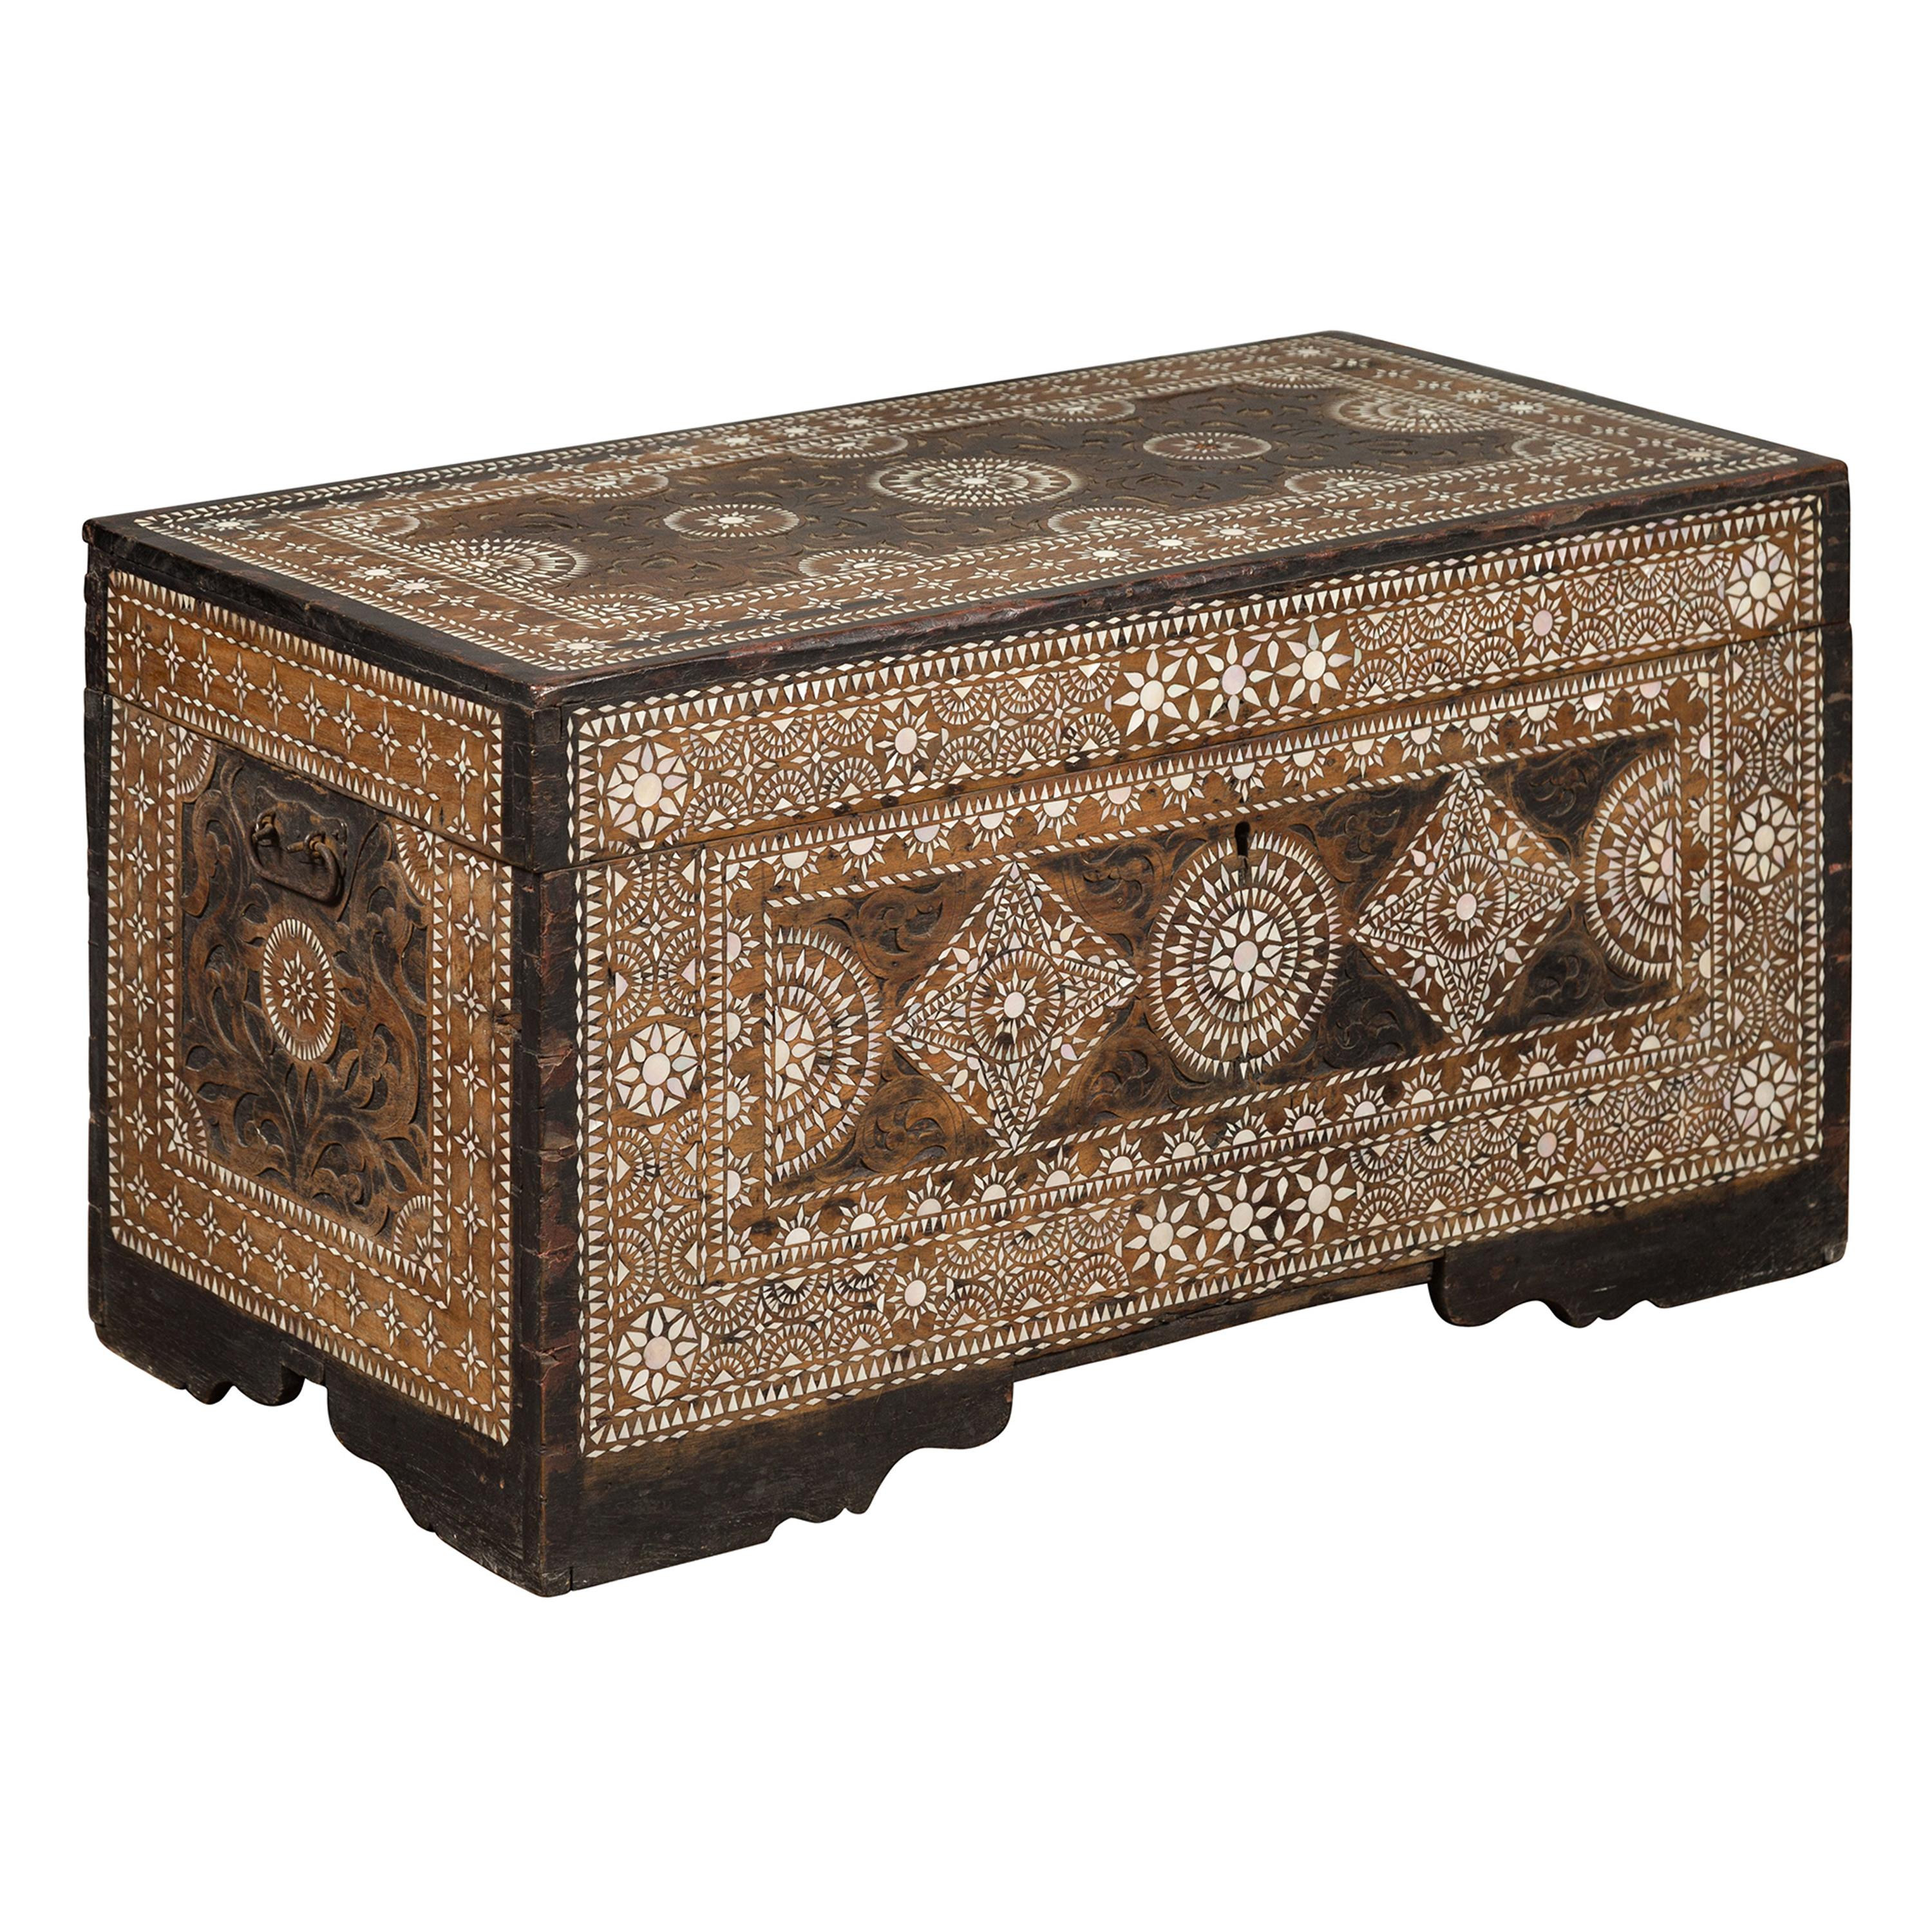 Moorish Style 1920s Blanket Chest With Geometric Mother Of Pearl Inlaid Decor At 1stdibs